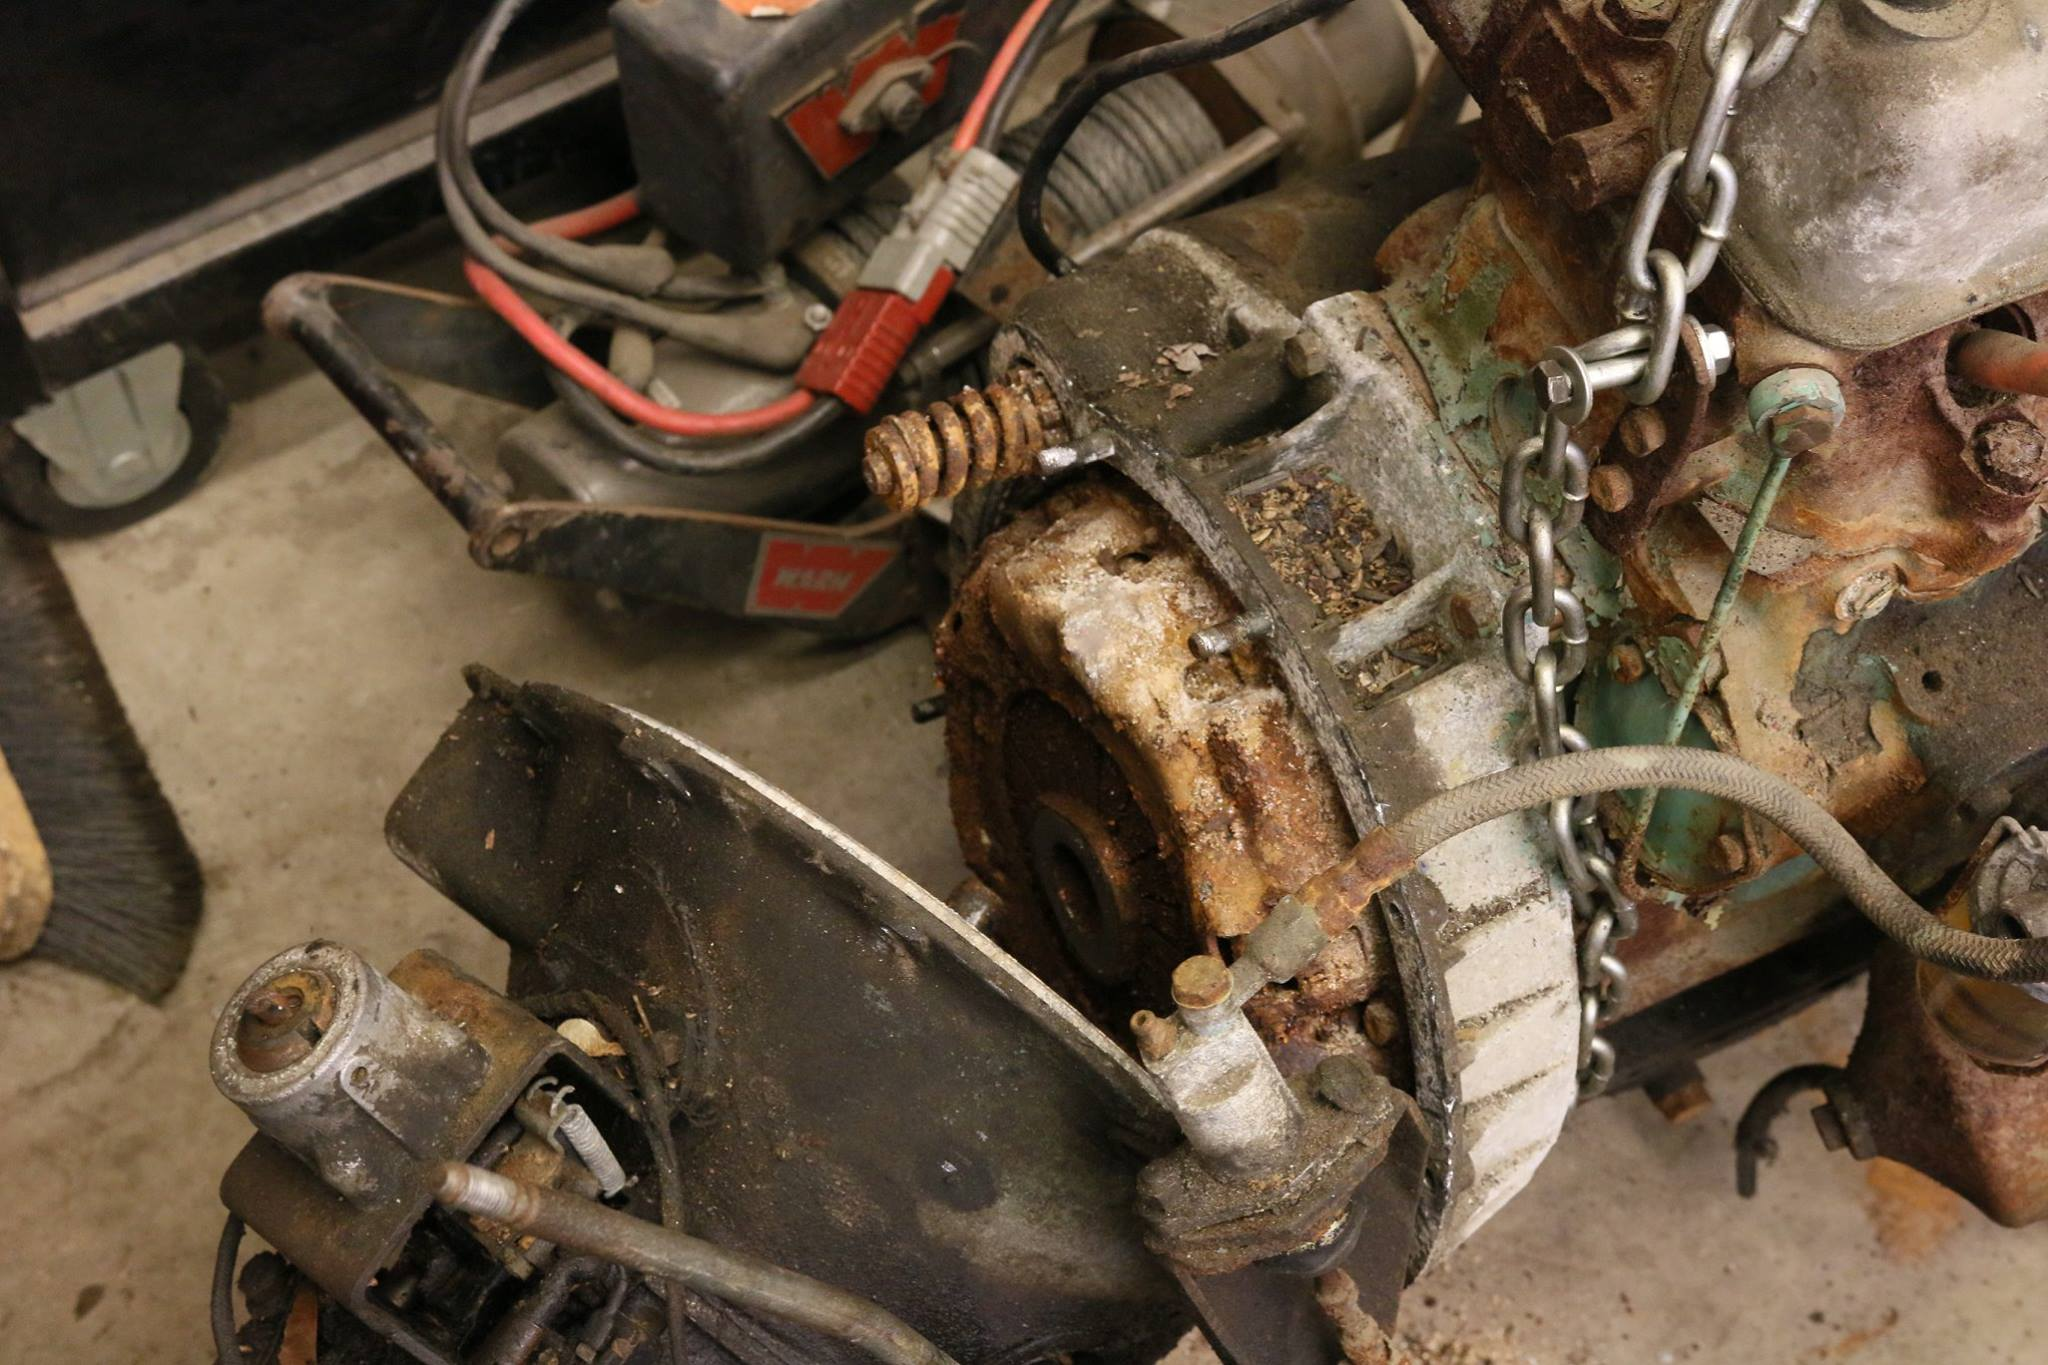 Badly rusted clutch and cracked engine block.